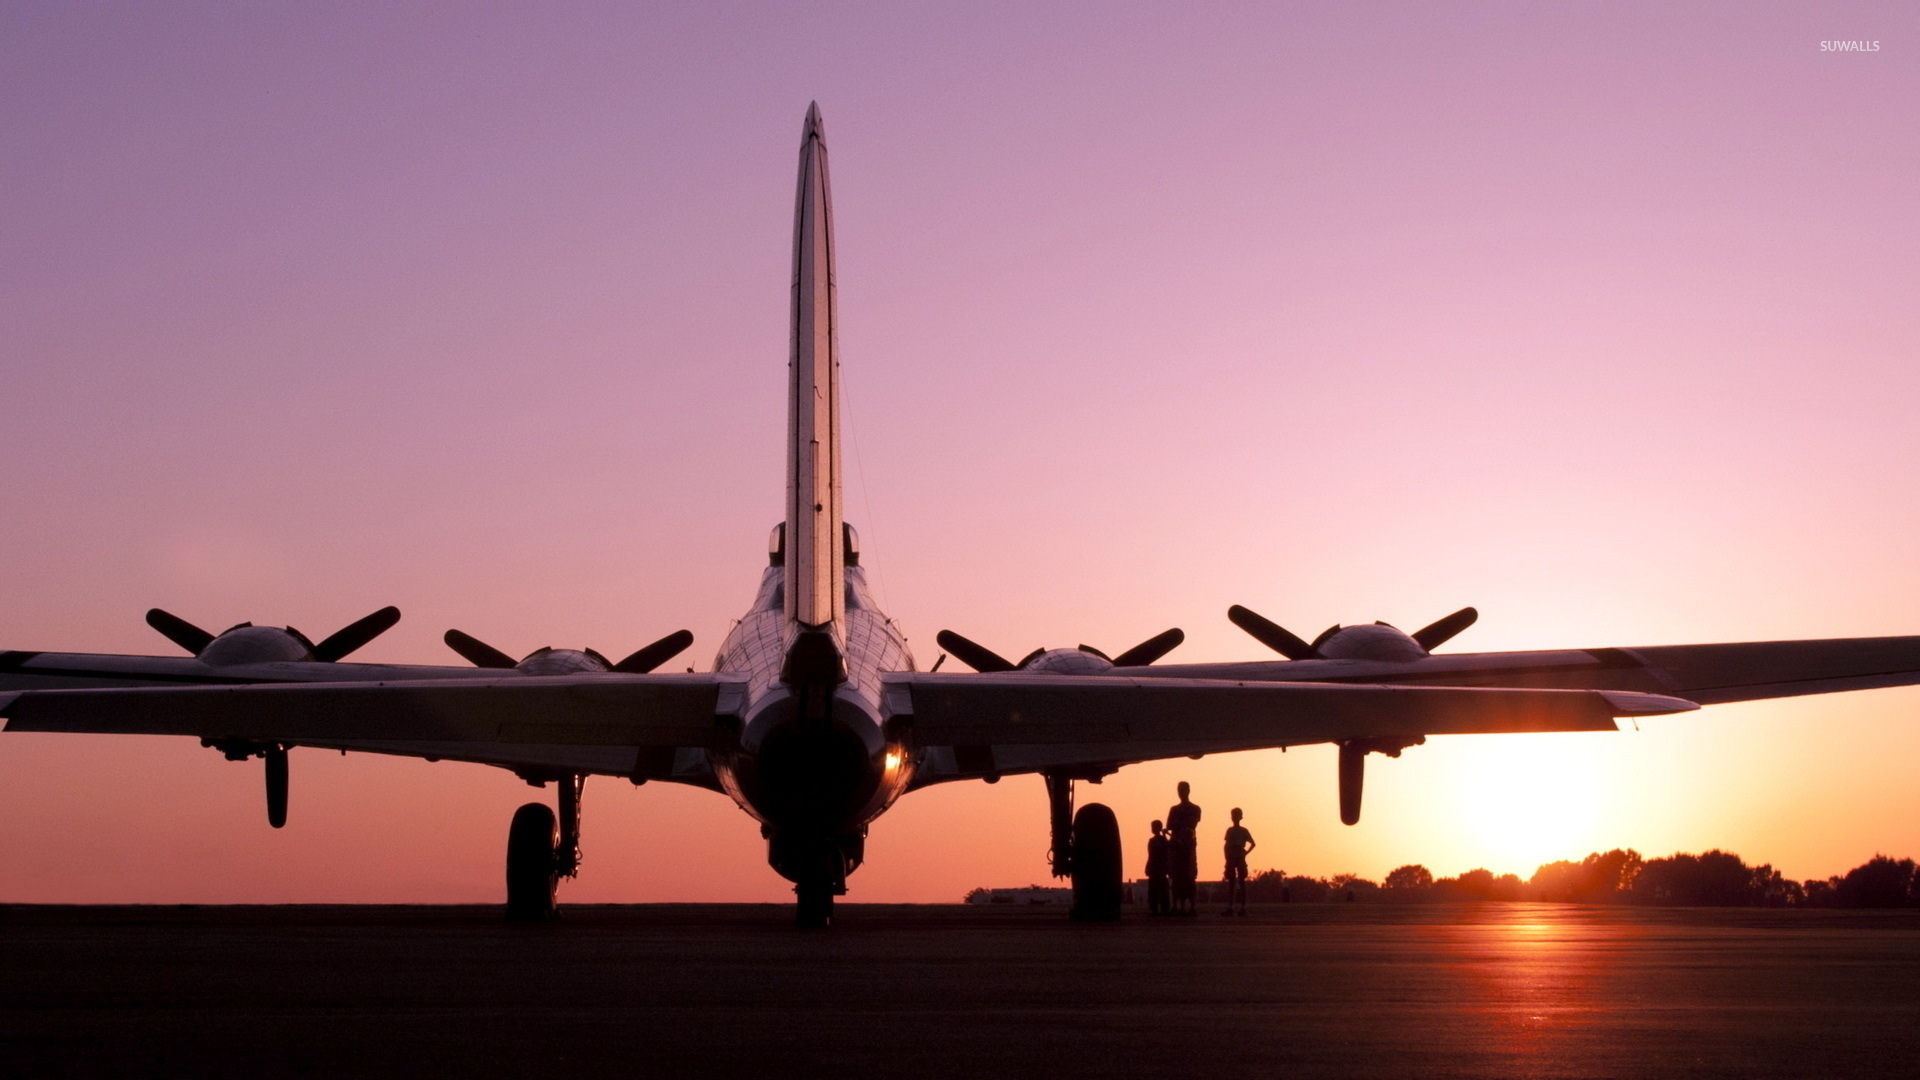 Boeing B 17 Flying Fortress [3] wallpaper   Aircraft wallpapers 1920x1080